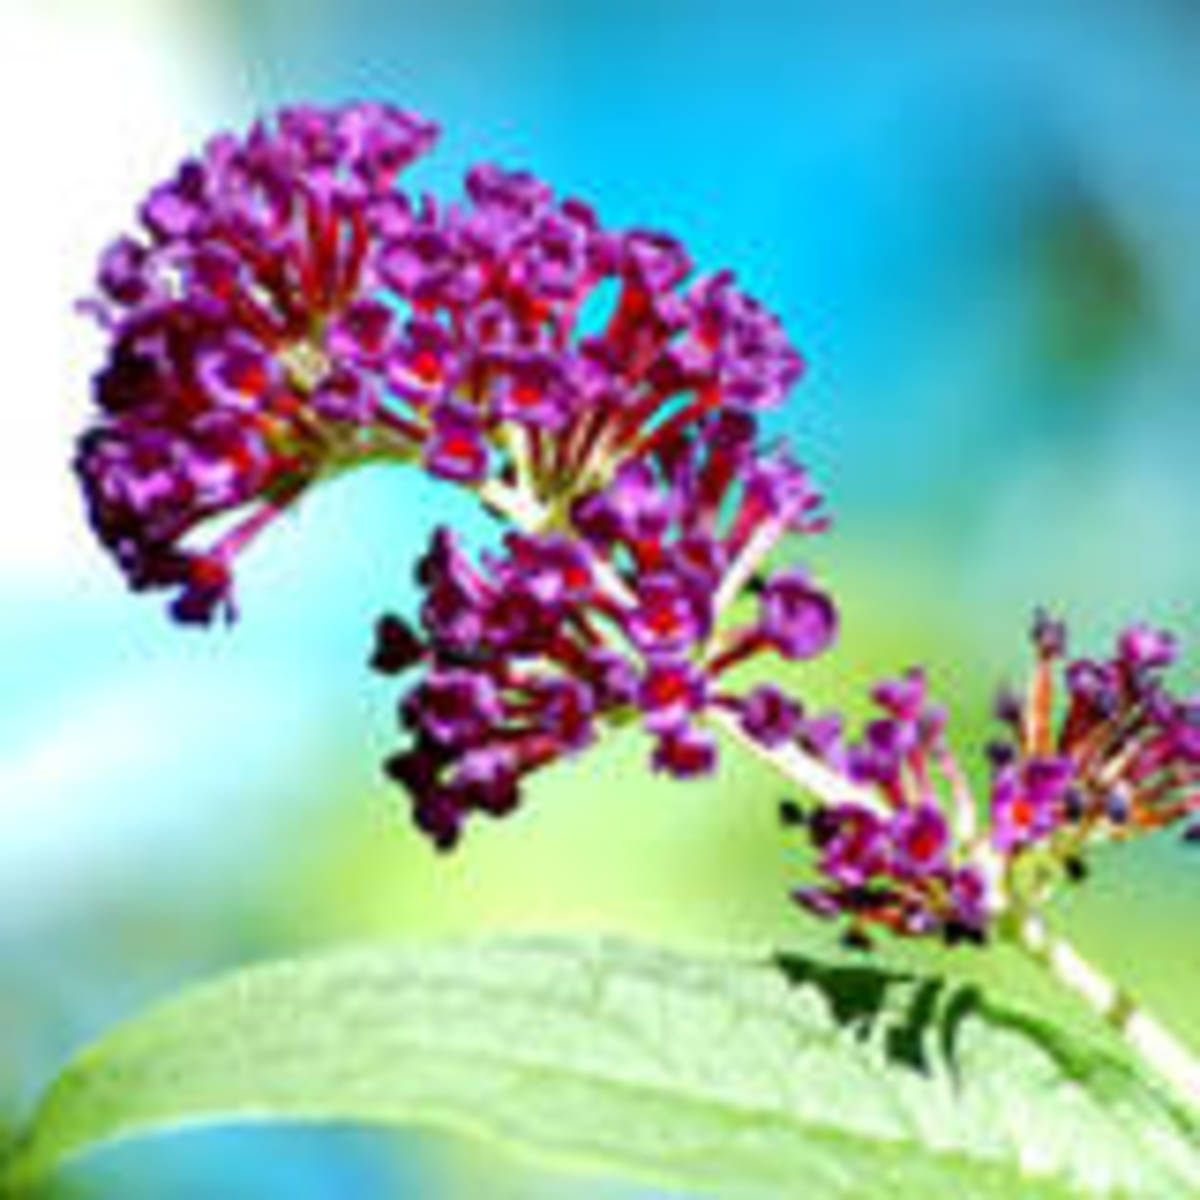 In this photo is a picture of the plant known as butterfly bush. It is a favorite of both hummingbirds and butterflies.